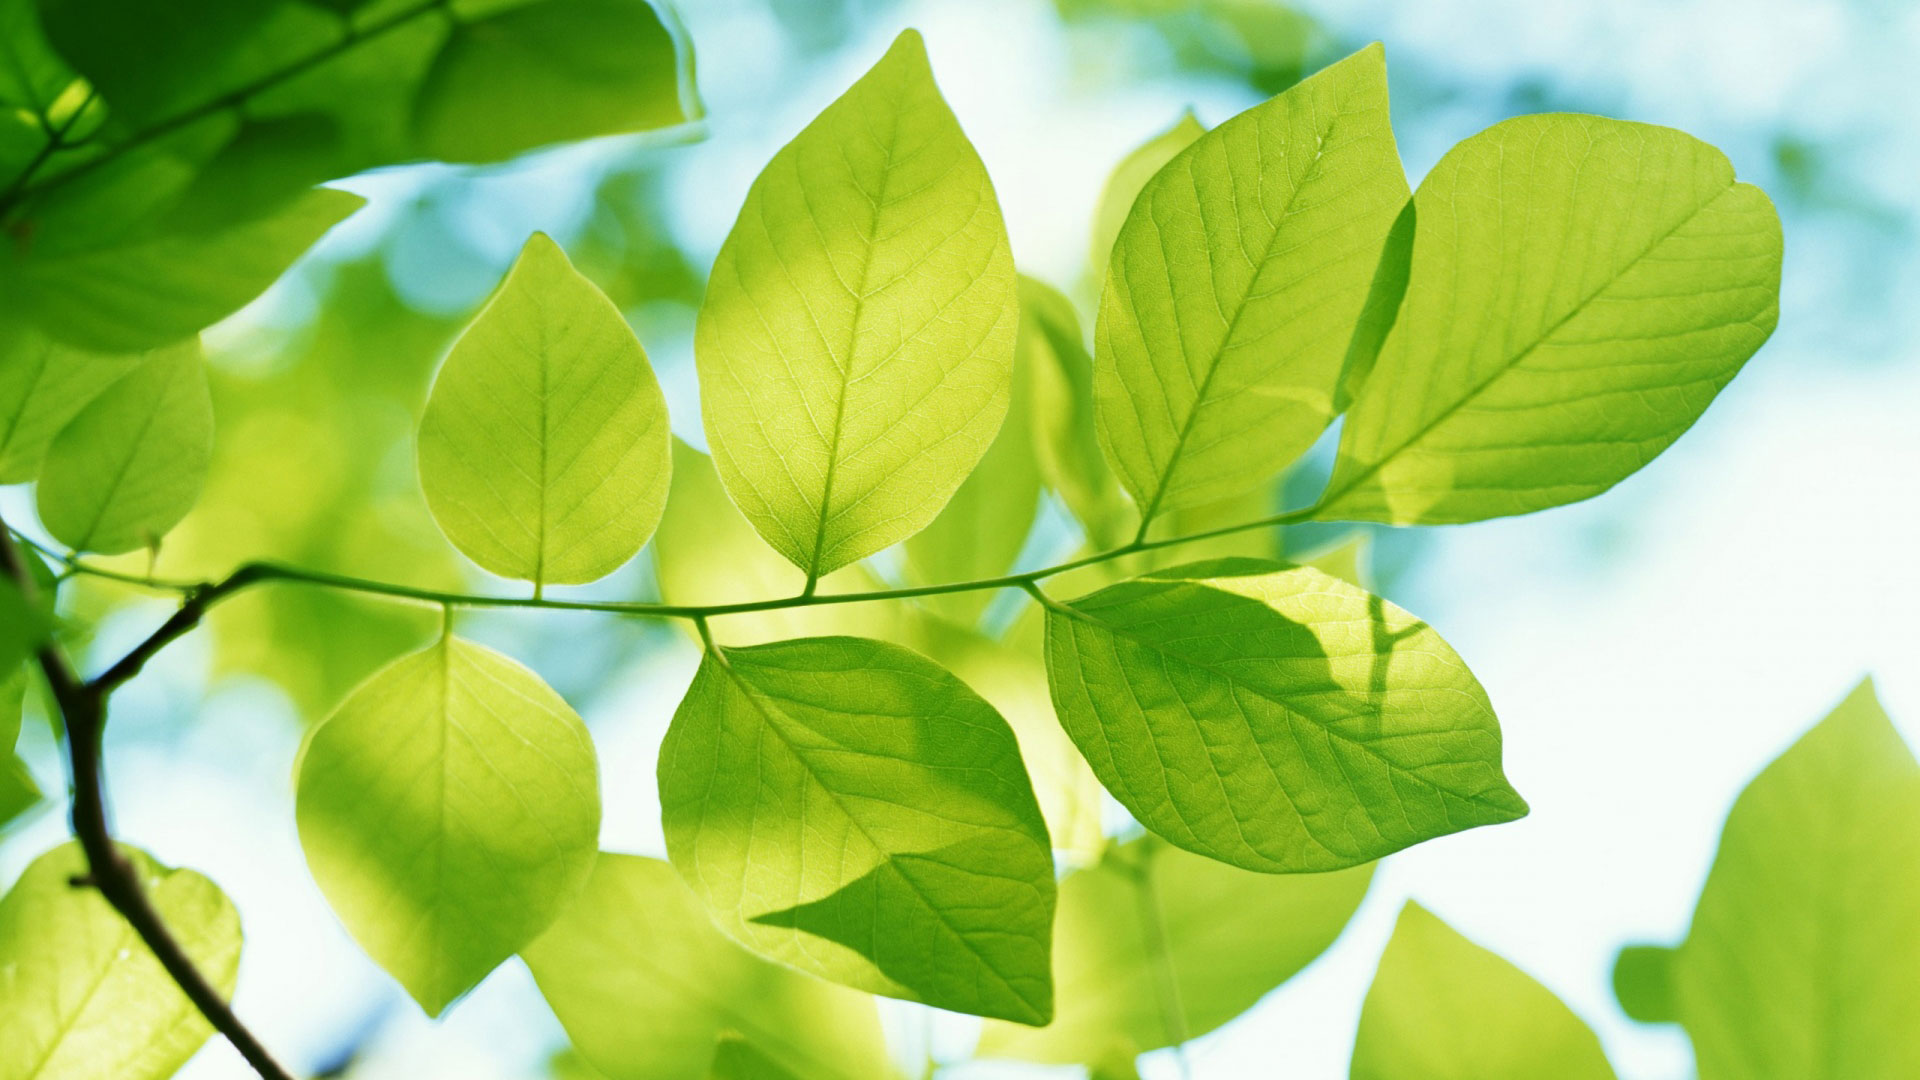 Green Leaves Wallpapers HD Wallpapers 1920x1080